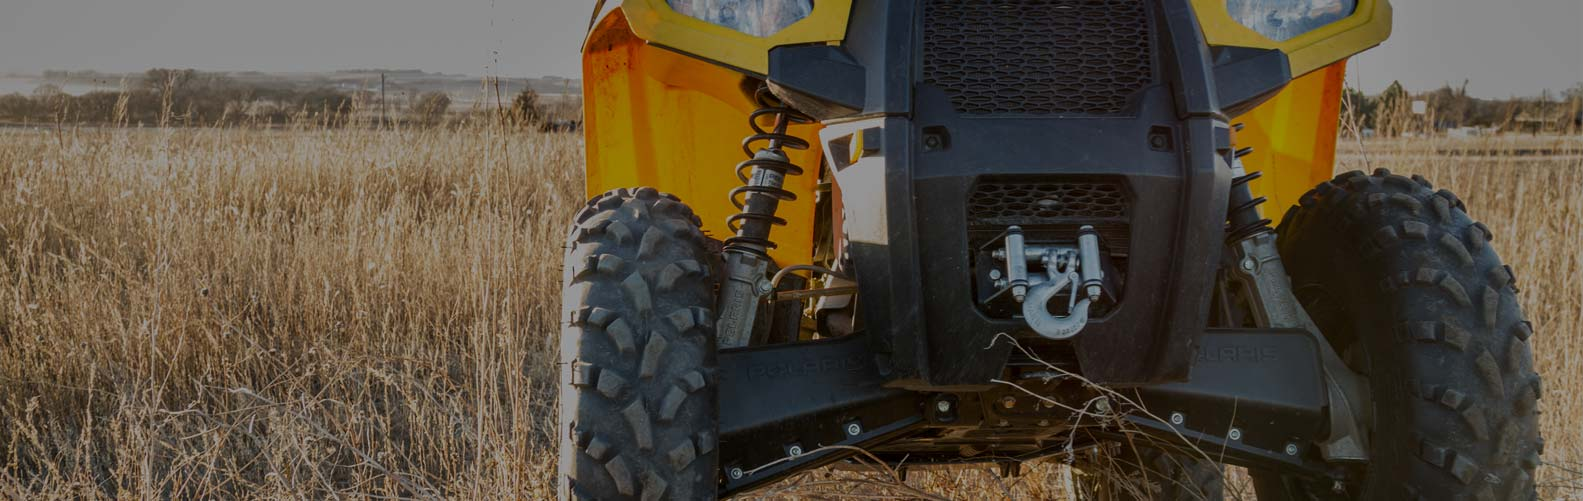 Home page - Power Sports Nation: The Cheapest Used ATV and Side by